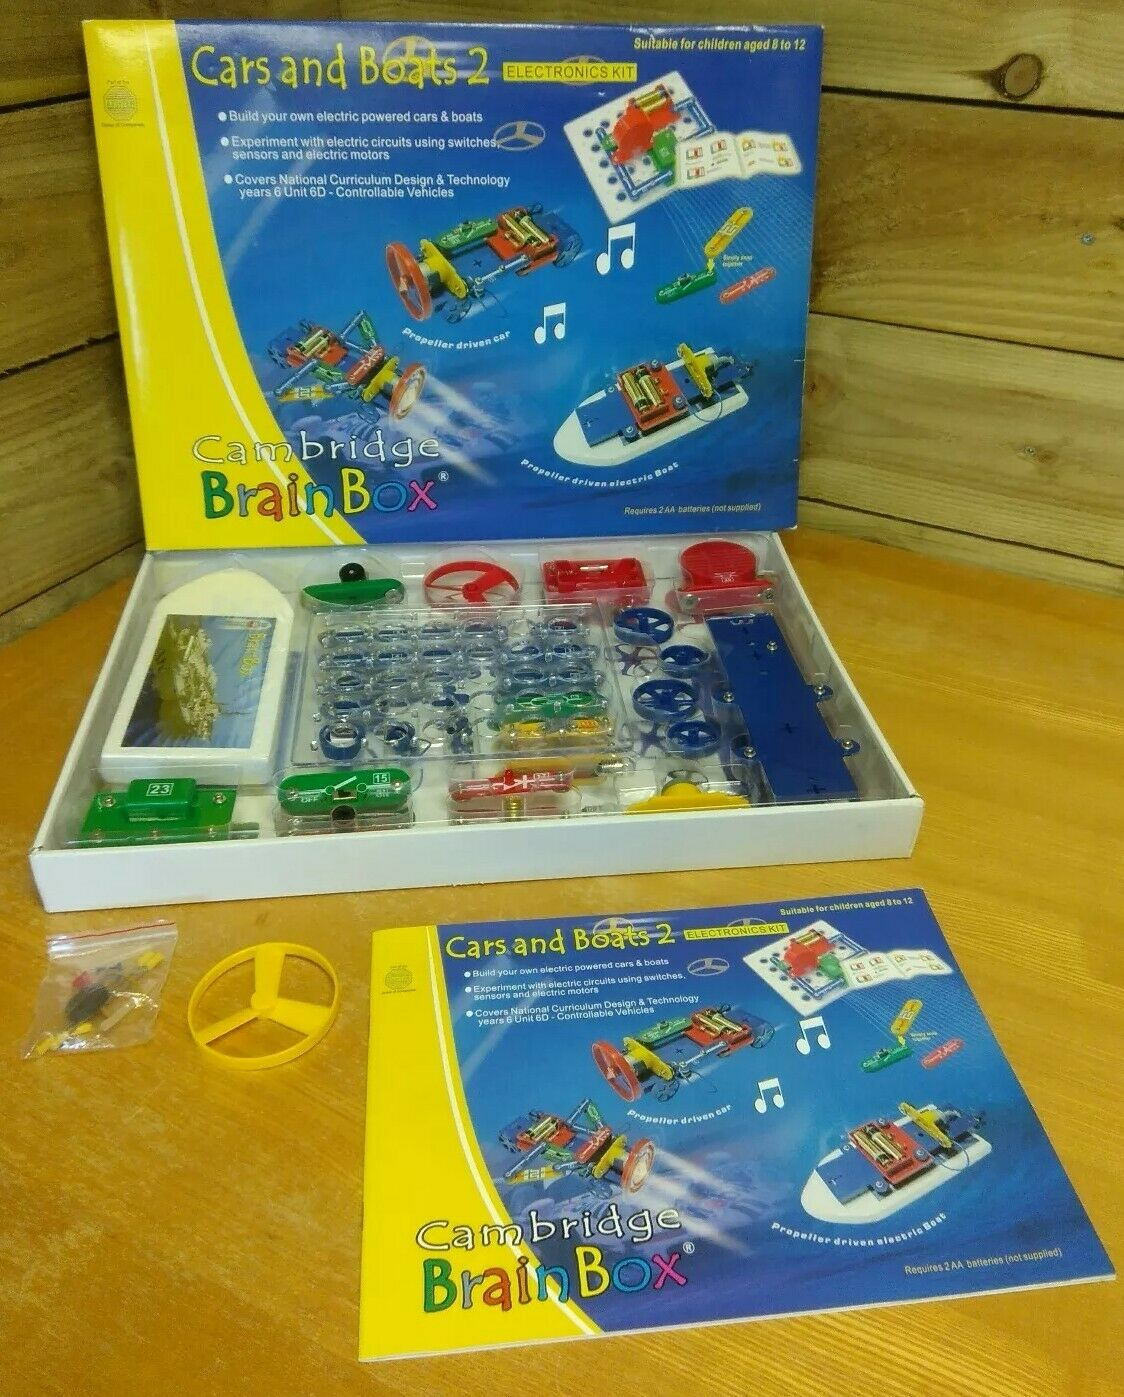 Cambridge - Cars and Boats 2 - Electronics Kit  - National Curriculum Approved